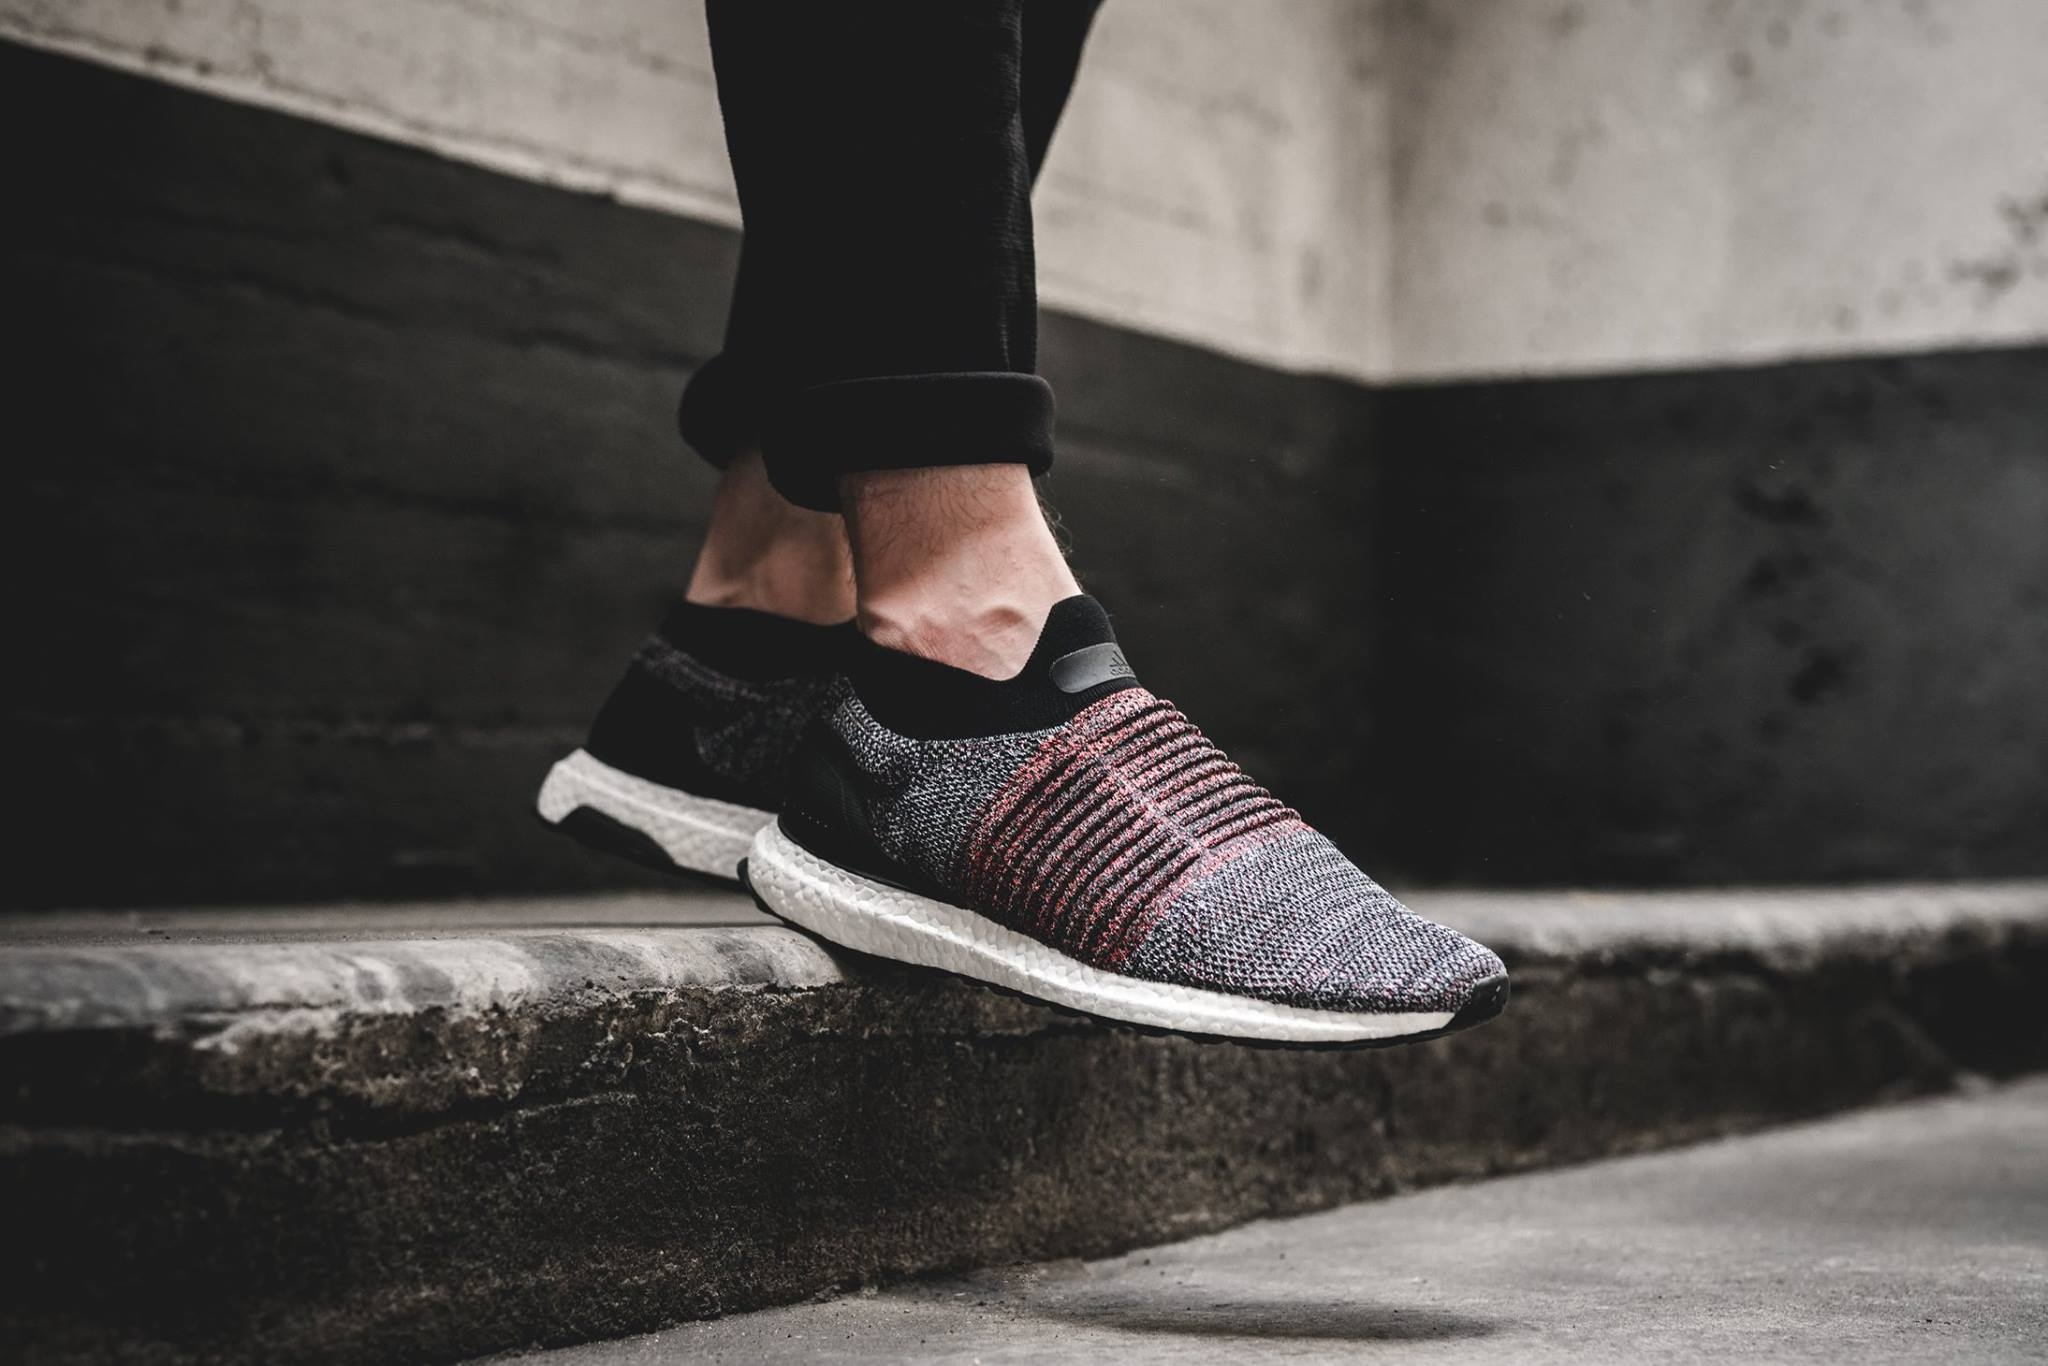 timeless design 90f9d bfe7e adidas First Ever Laceless UltraBOOST Running Shoes - MASSES